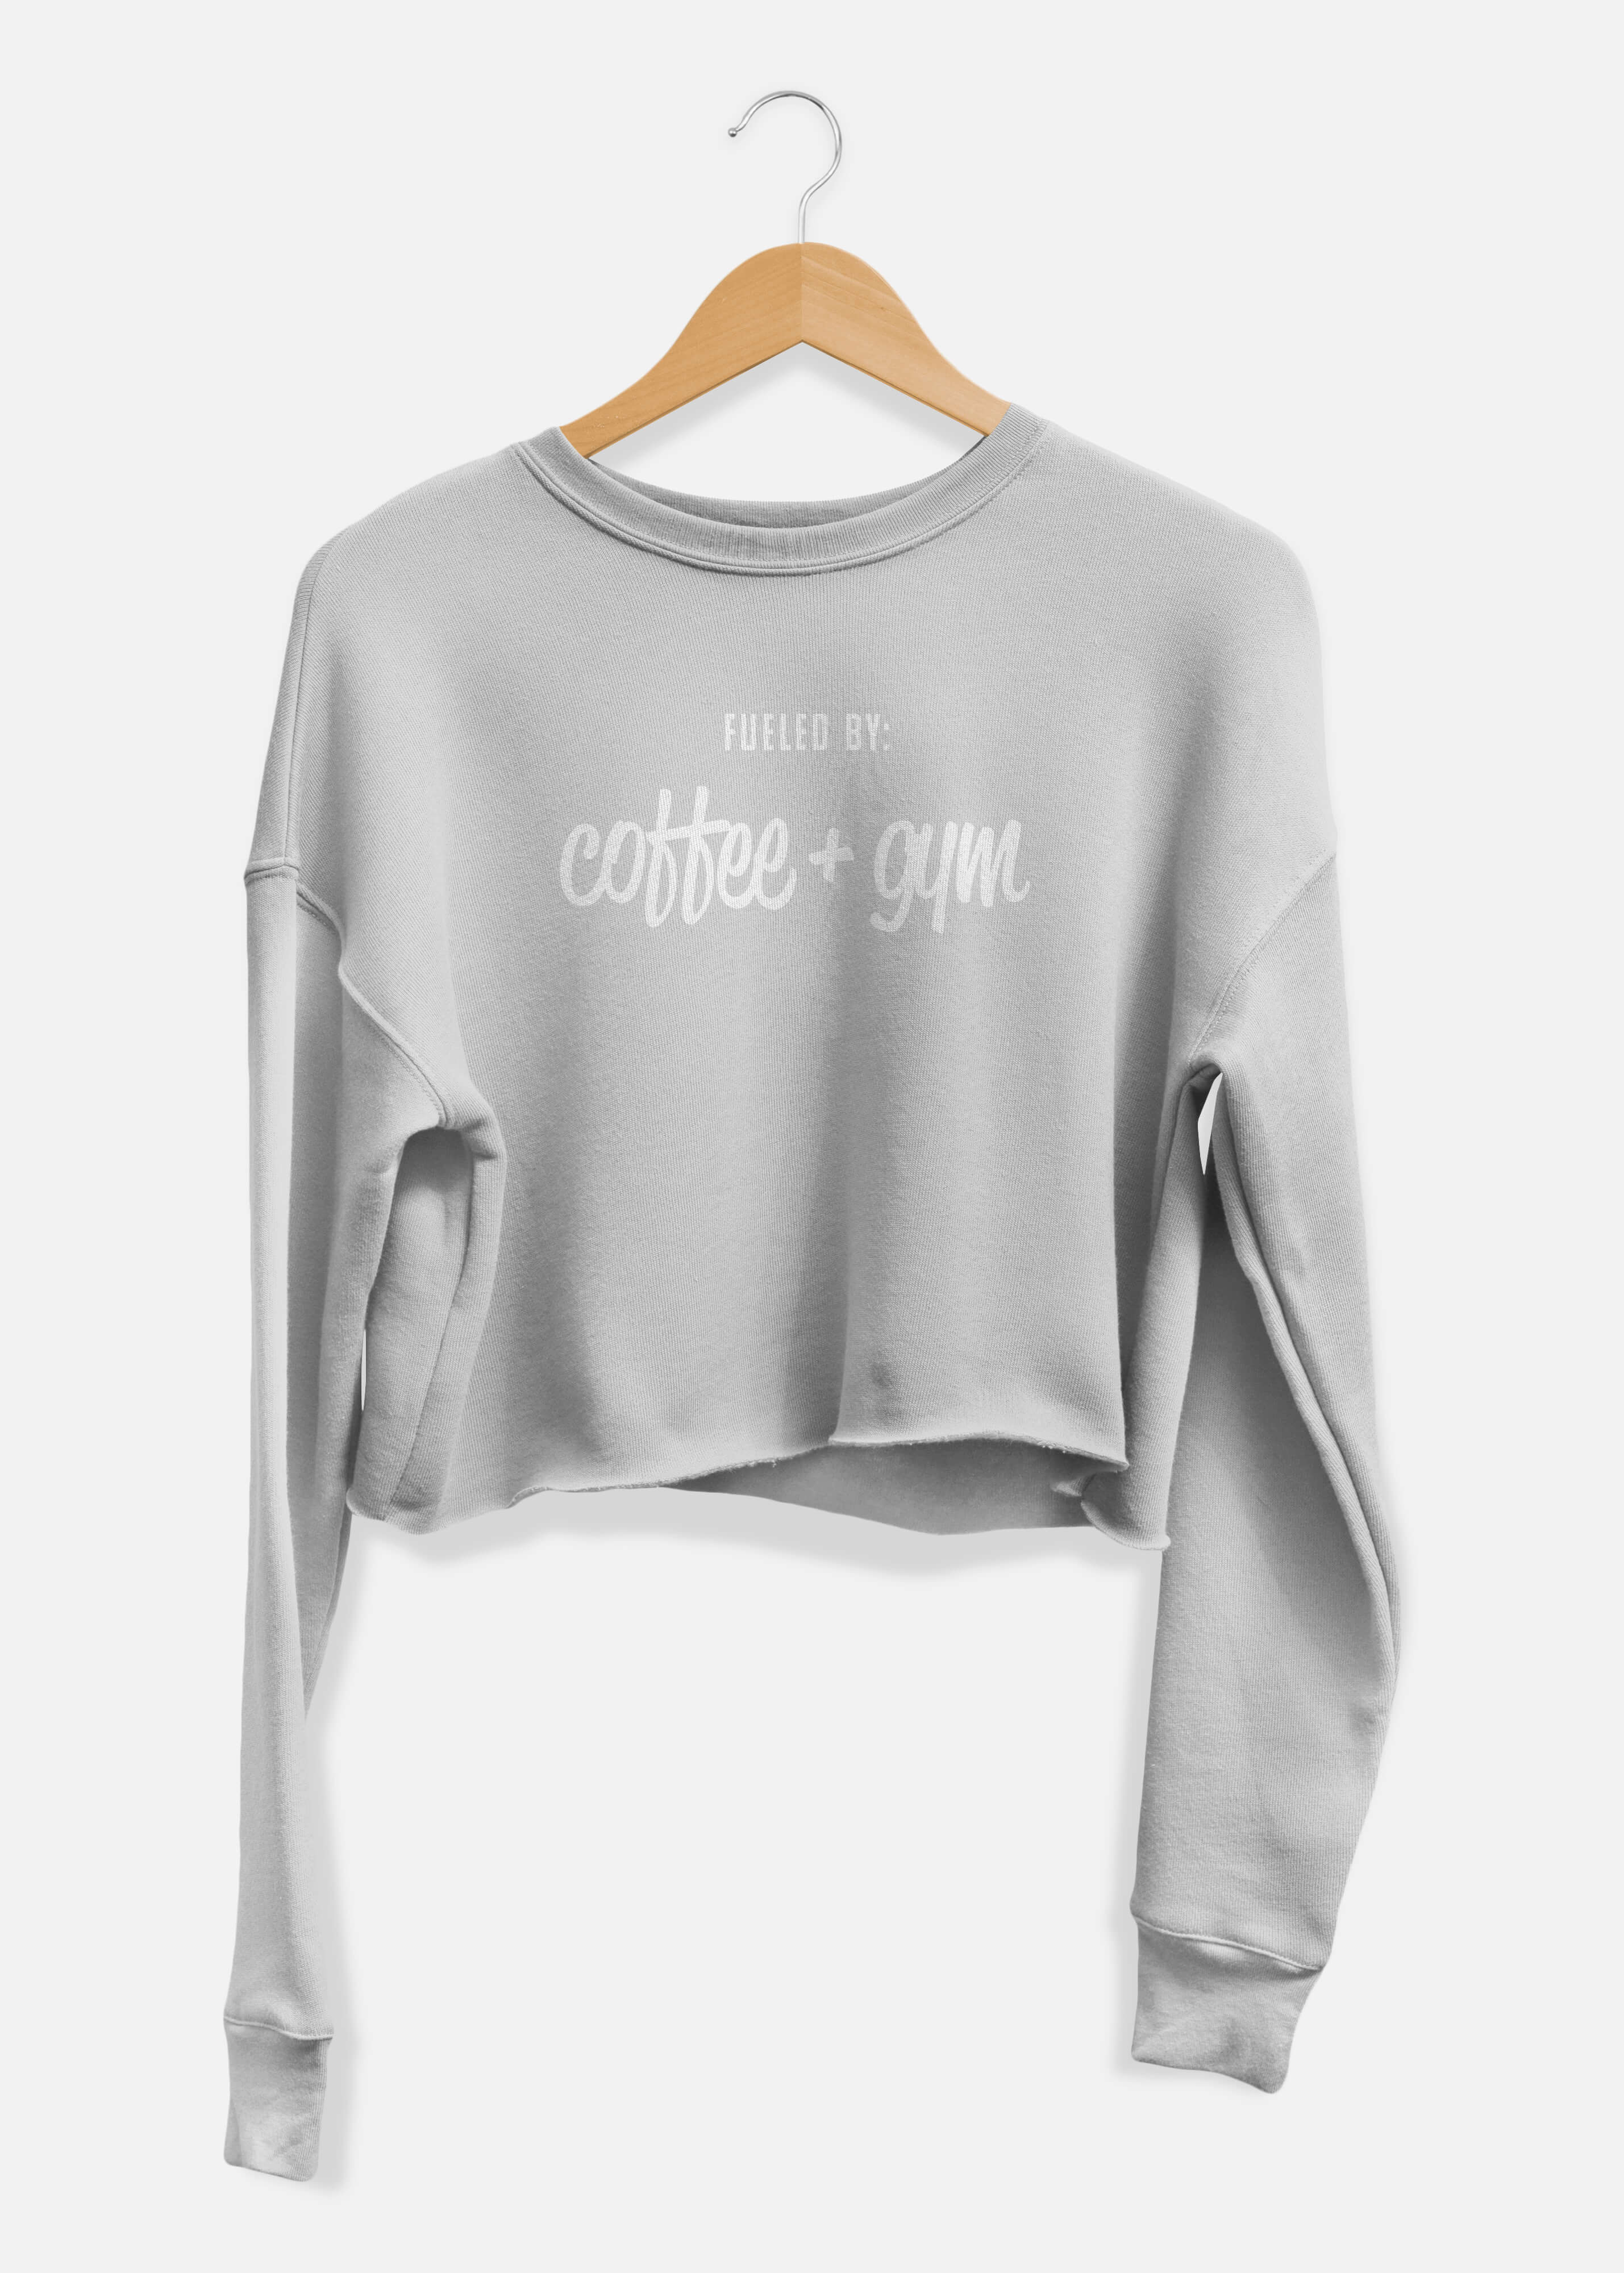 Fueled By Coffee + Gym Cropped Sweater